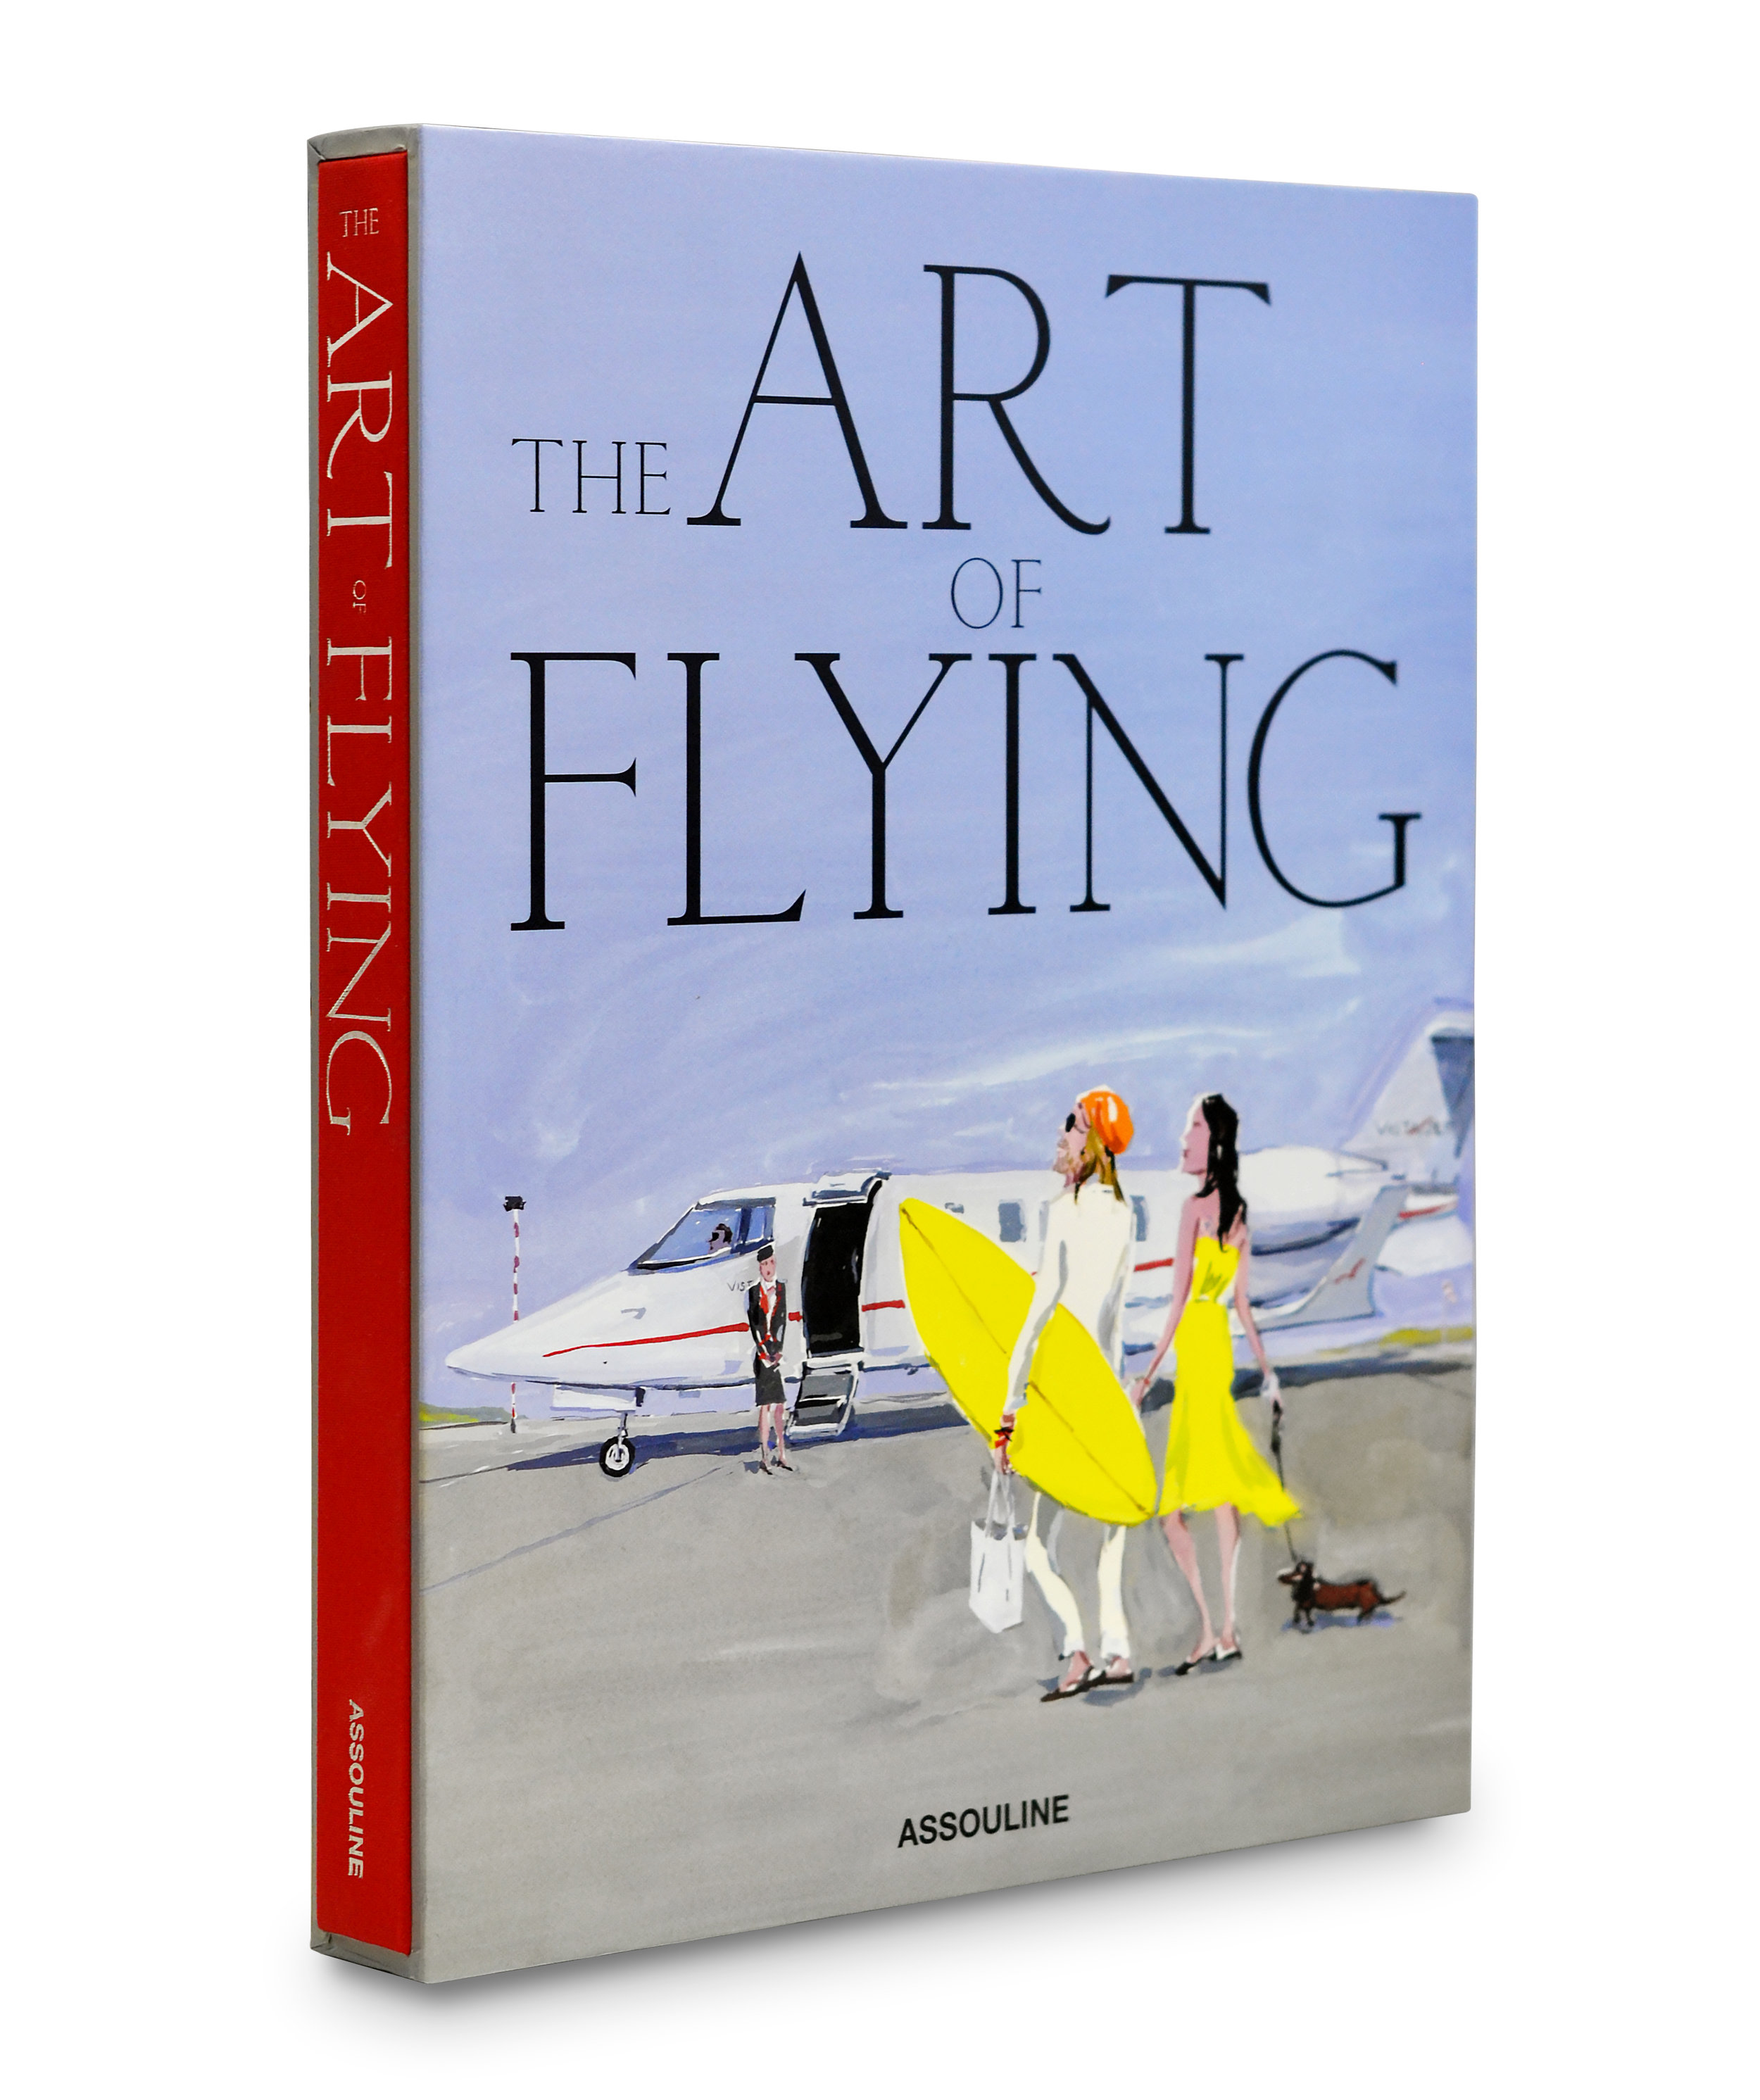 The Art of Flying by Josh Condon